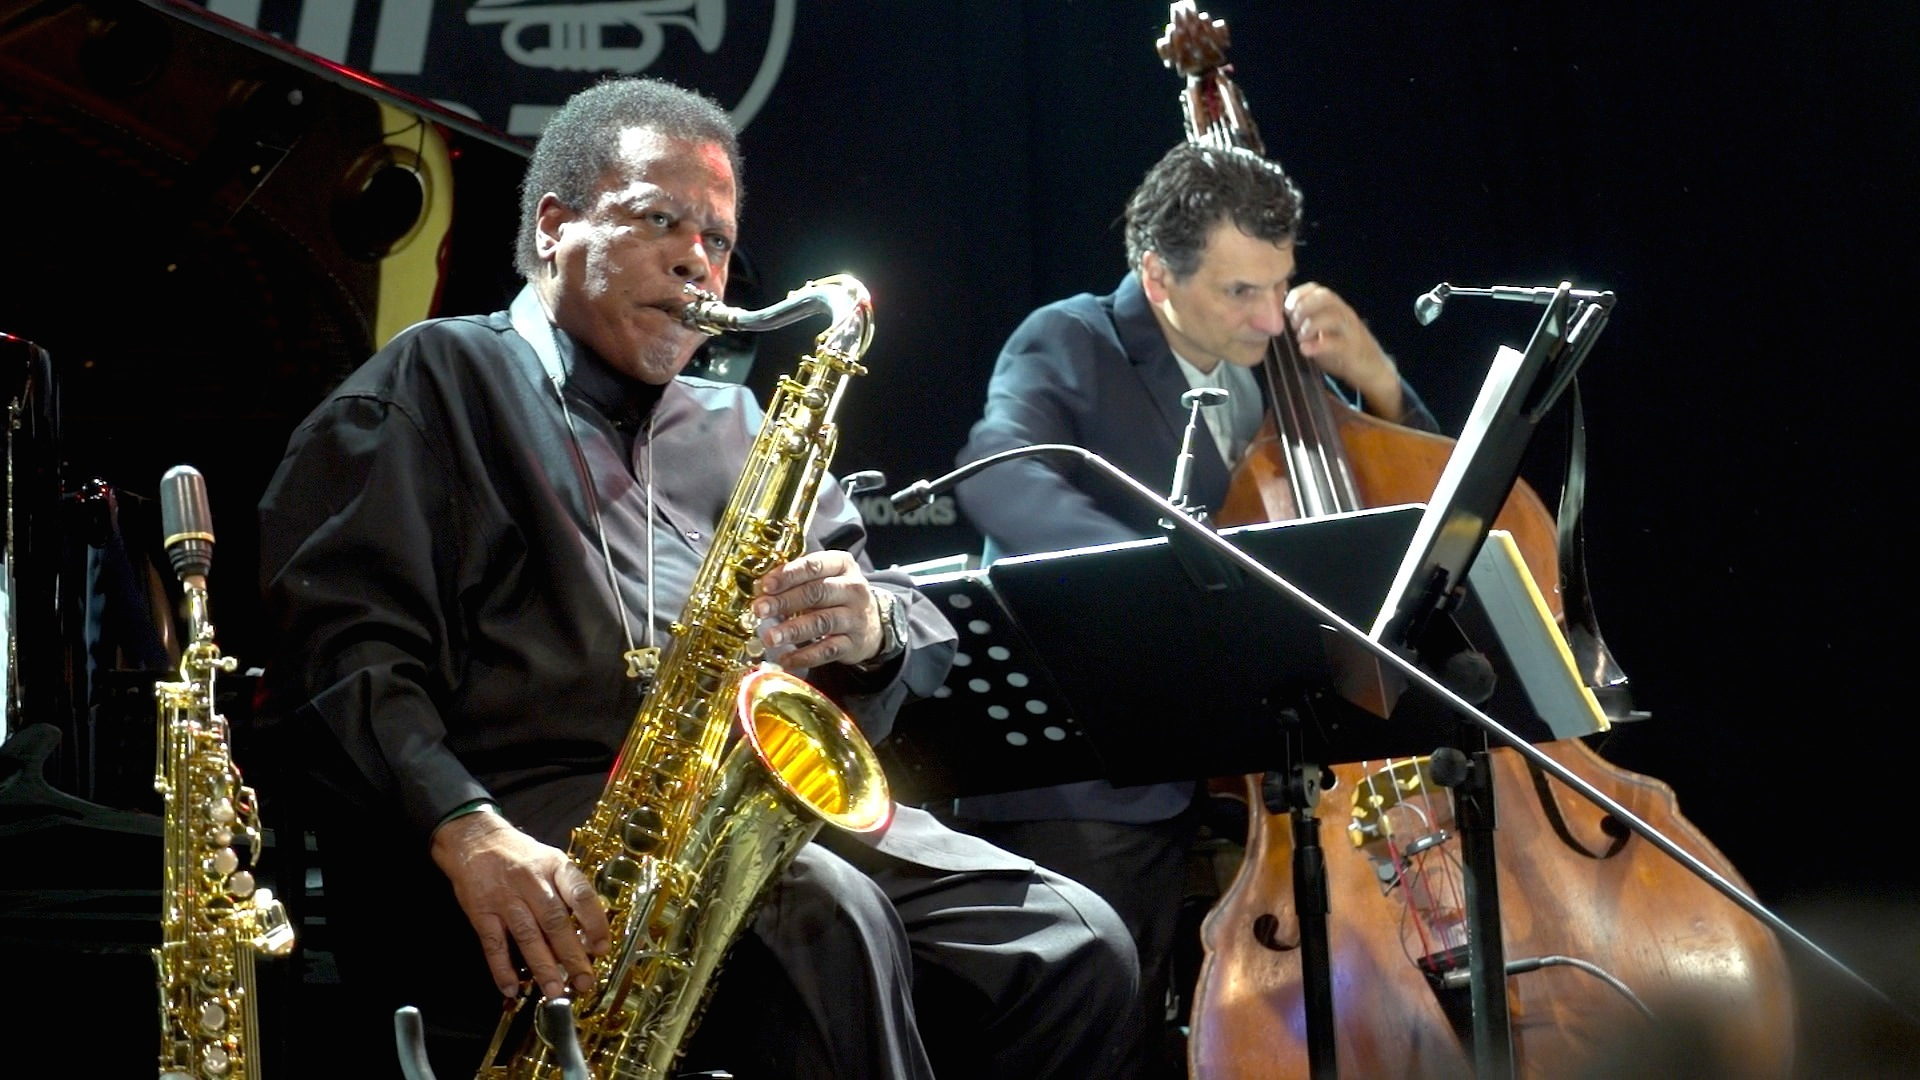 Wayne Shorter and his Quartet play for uber-capacity crowd